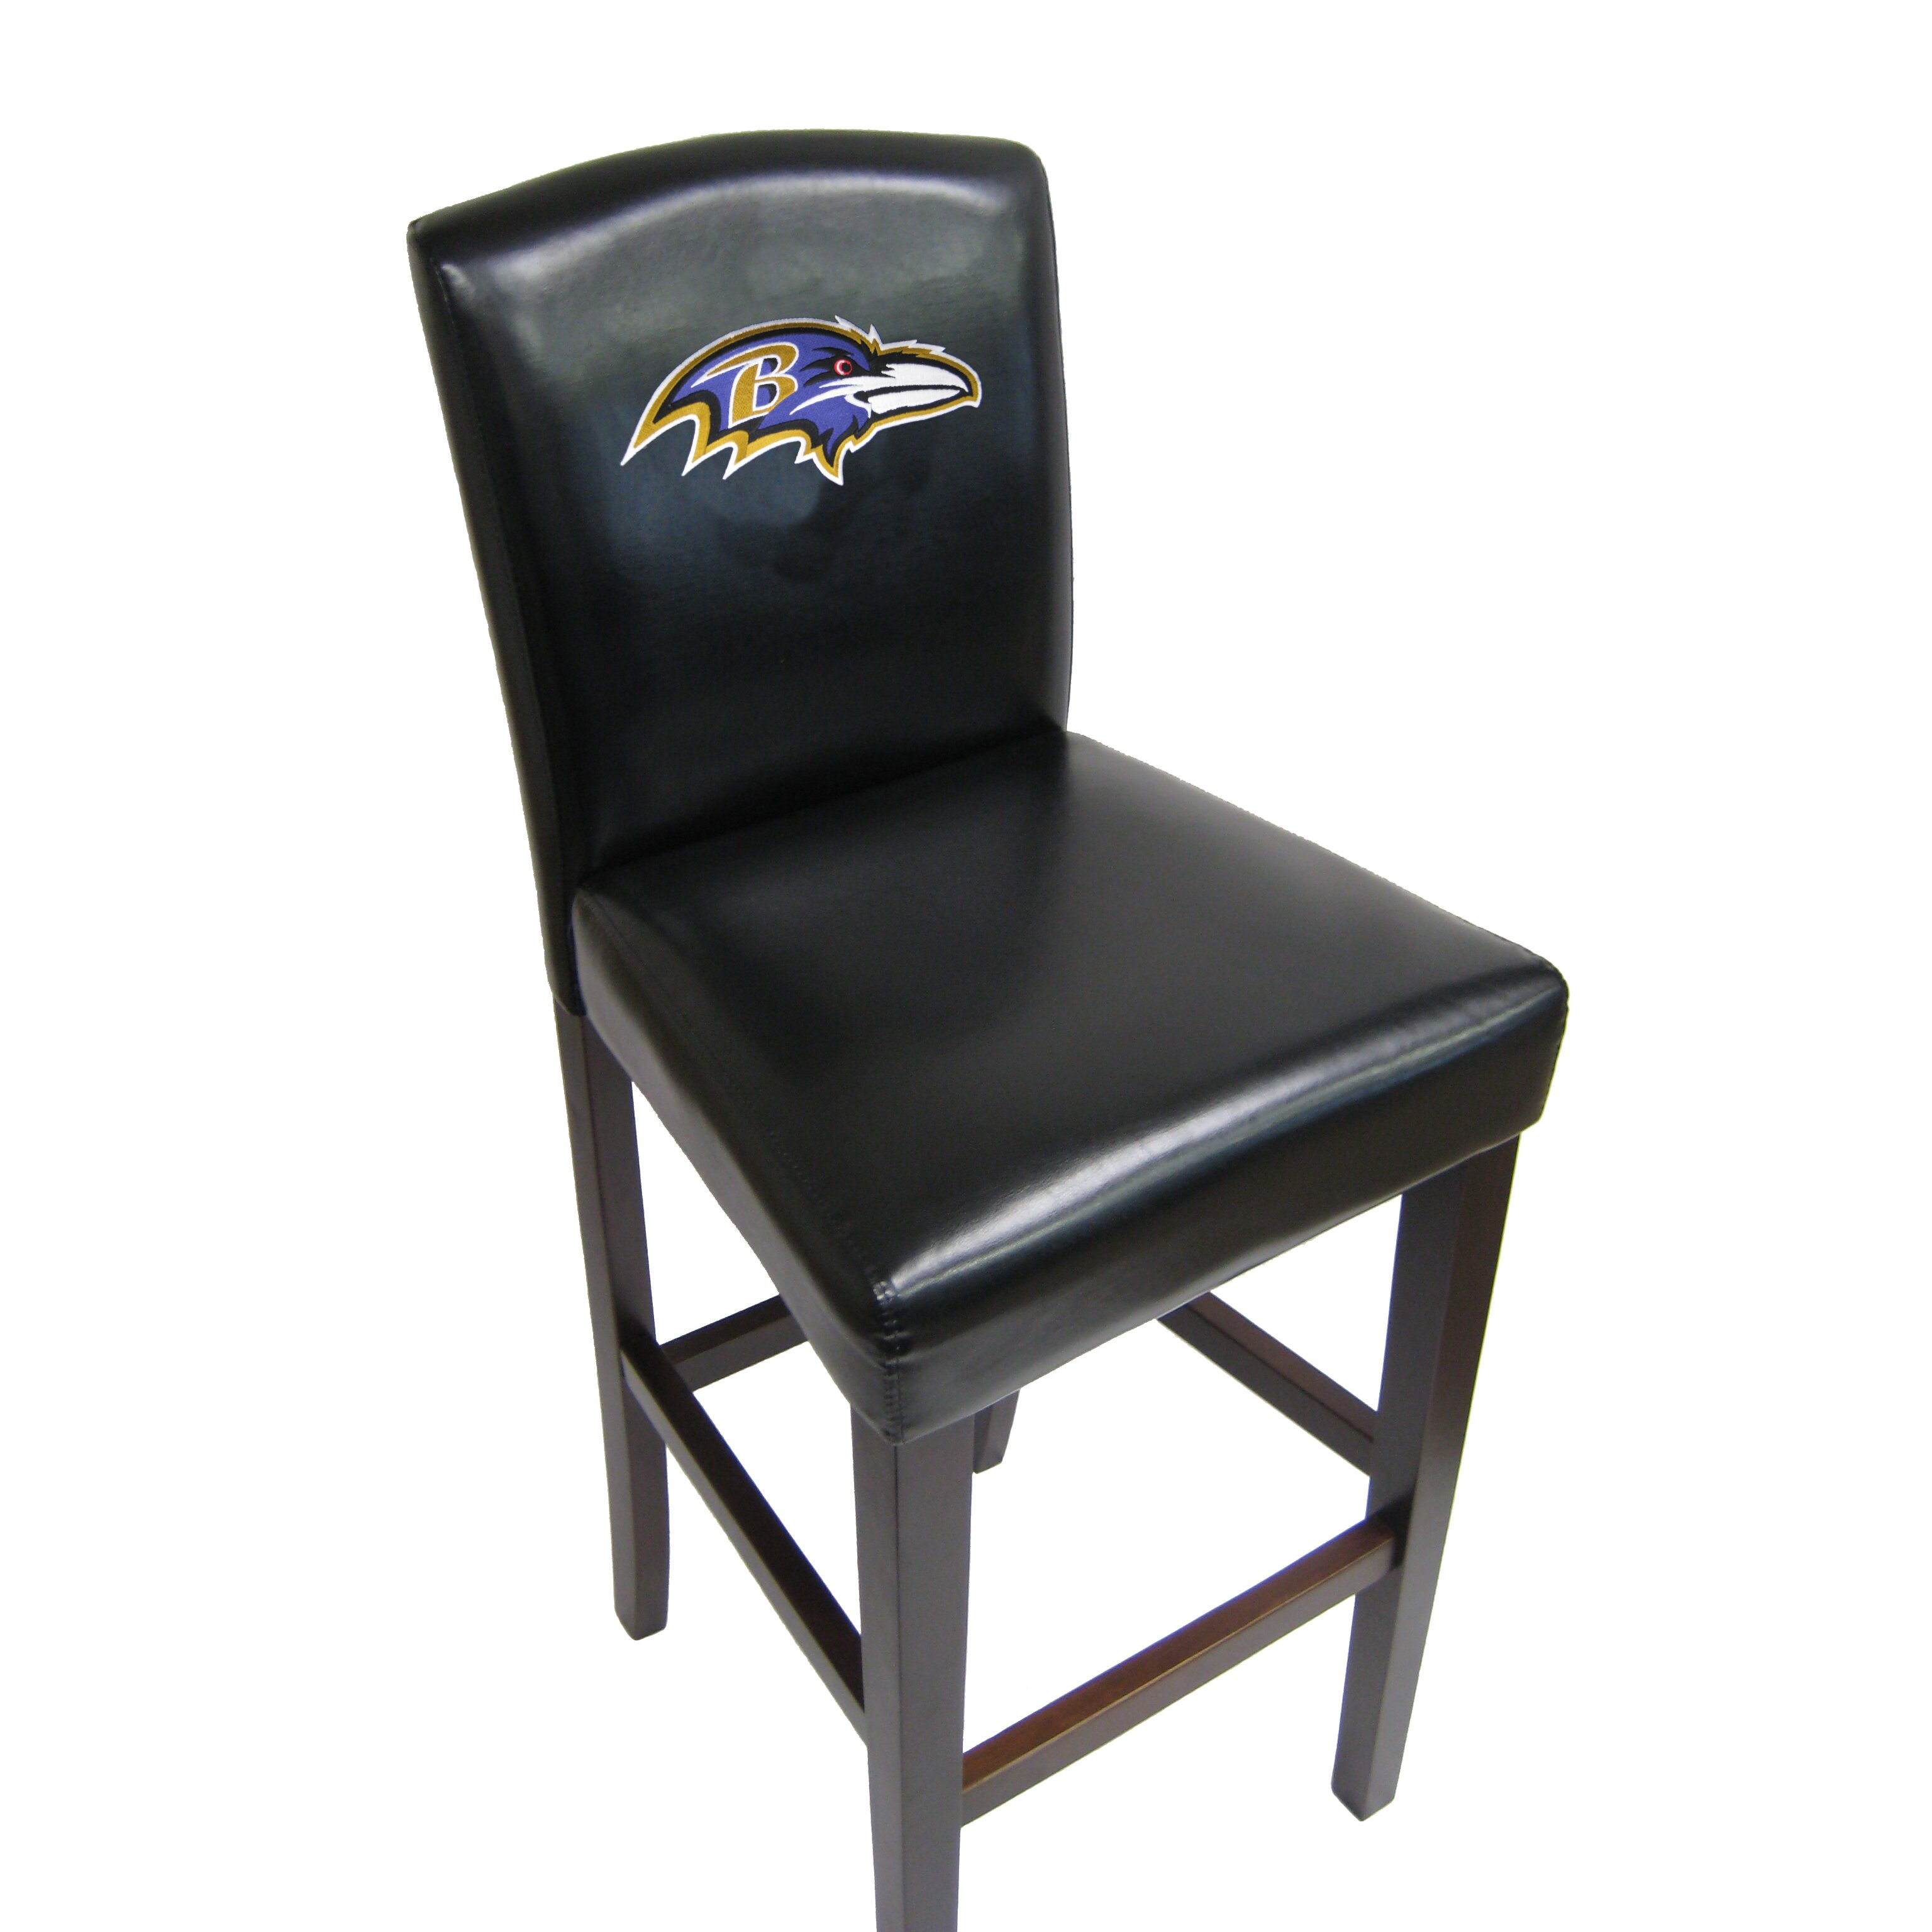 Imperial Nfl Bar Stool With Cushion Amp Reviews Wayfair Ca